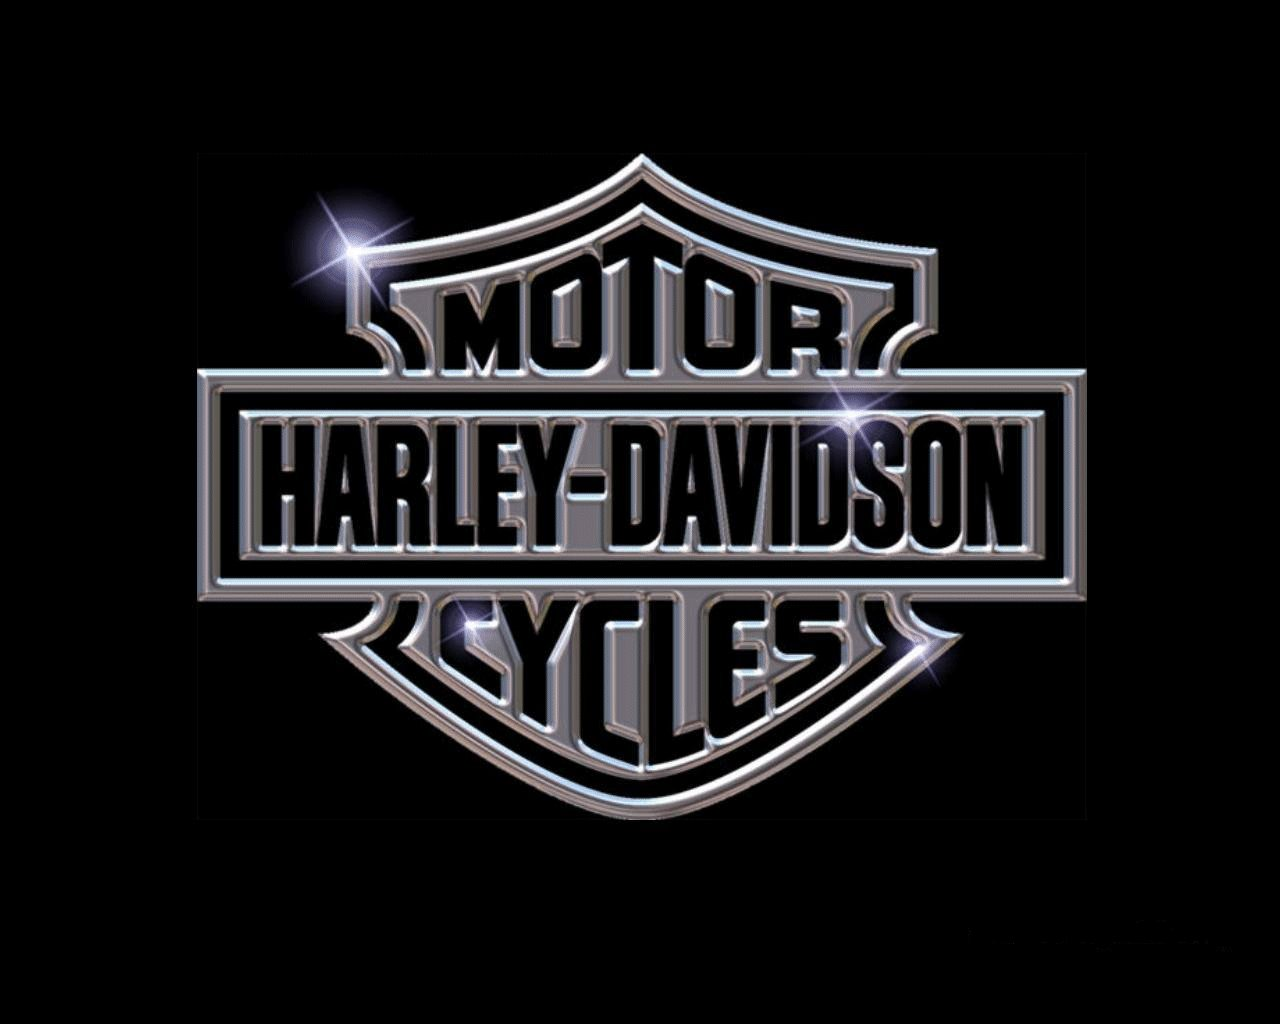 Harley Davidson Logo Wallpaper HD wallpaper background 1280x1024